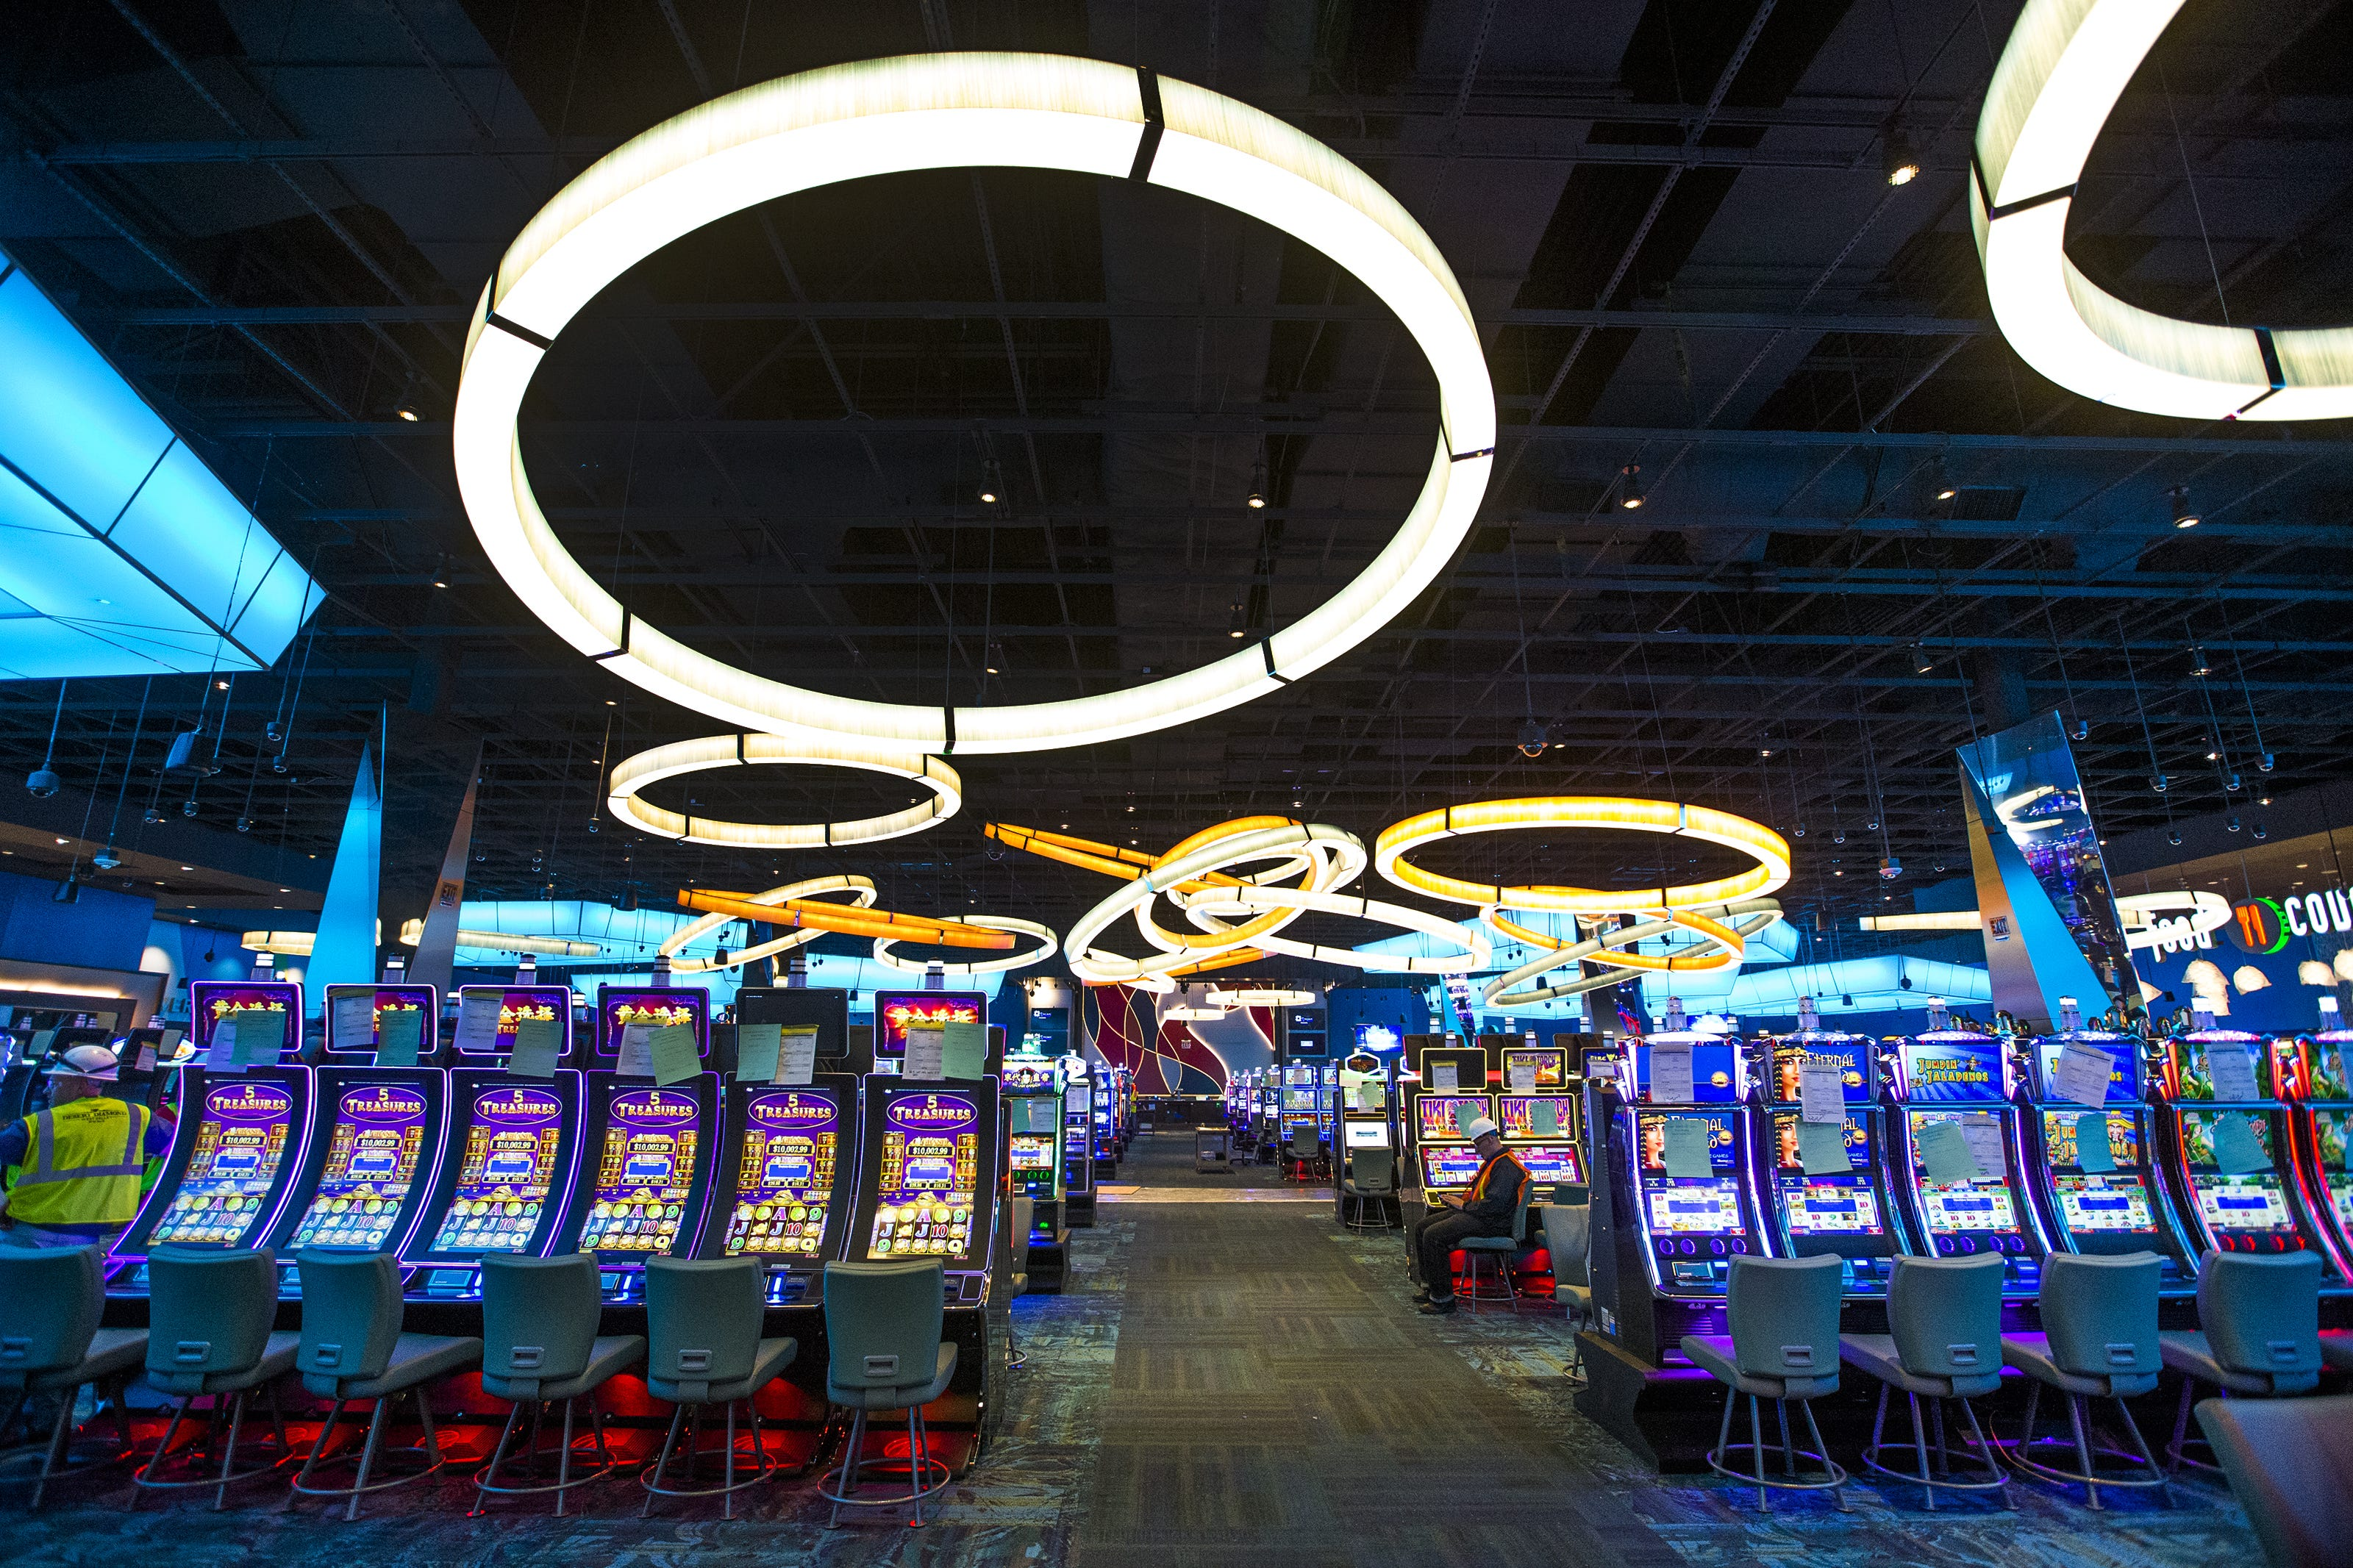 Tom manuel casino owner free casinos in las vegas